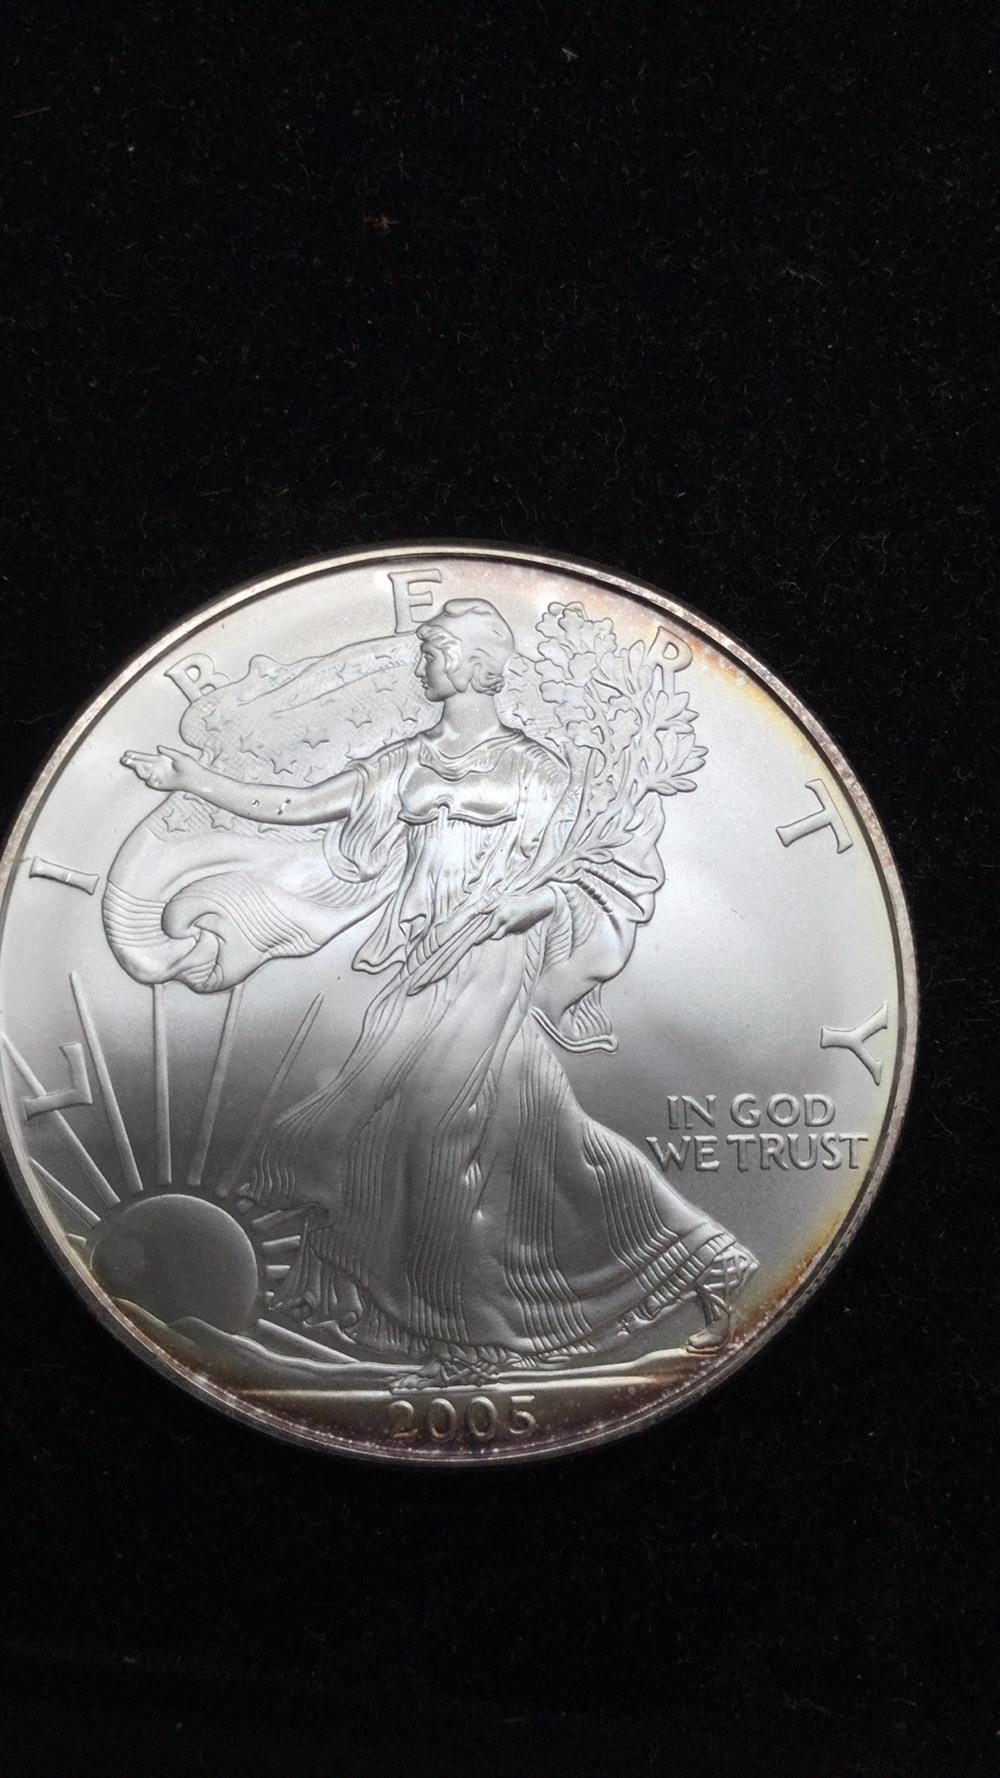 2005 American eagle dollar coin